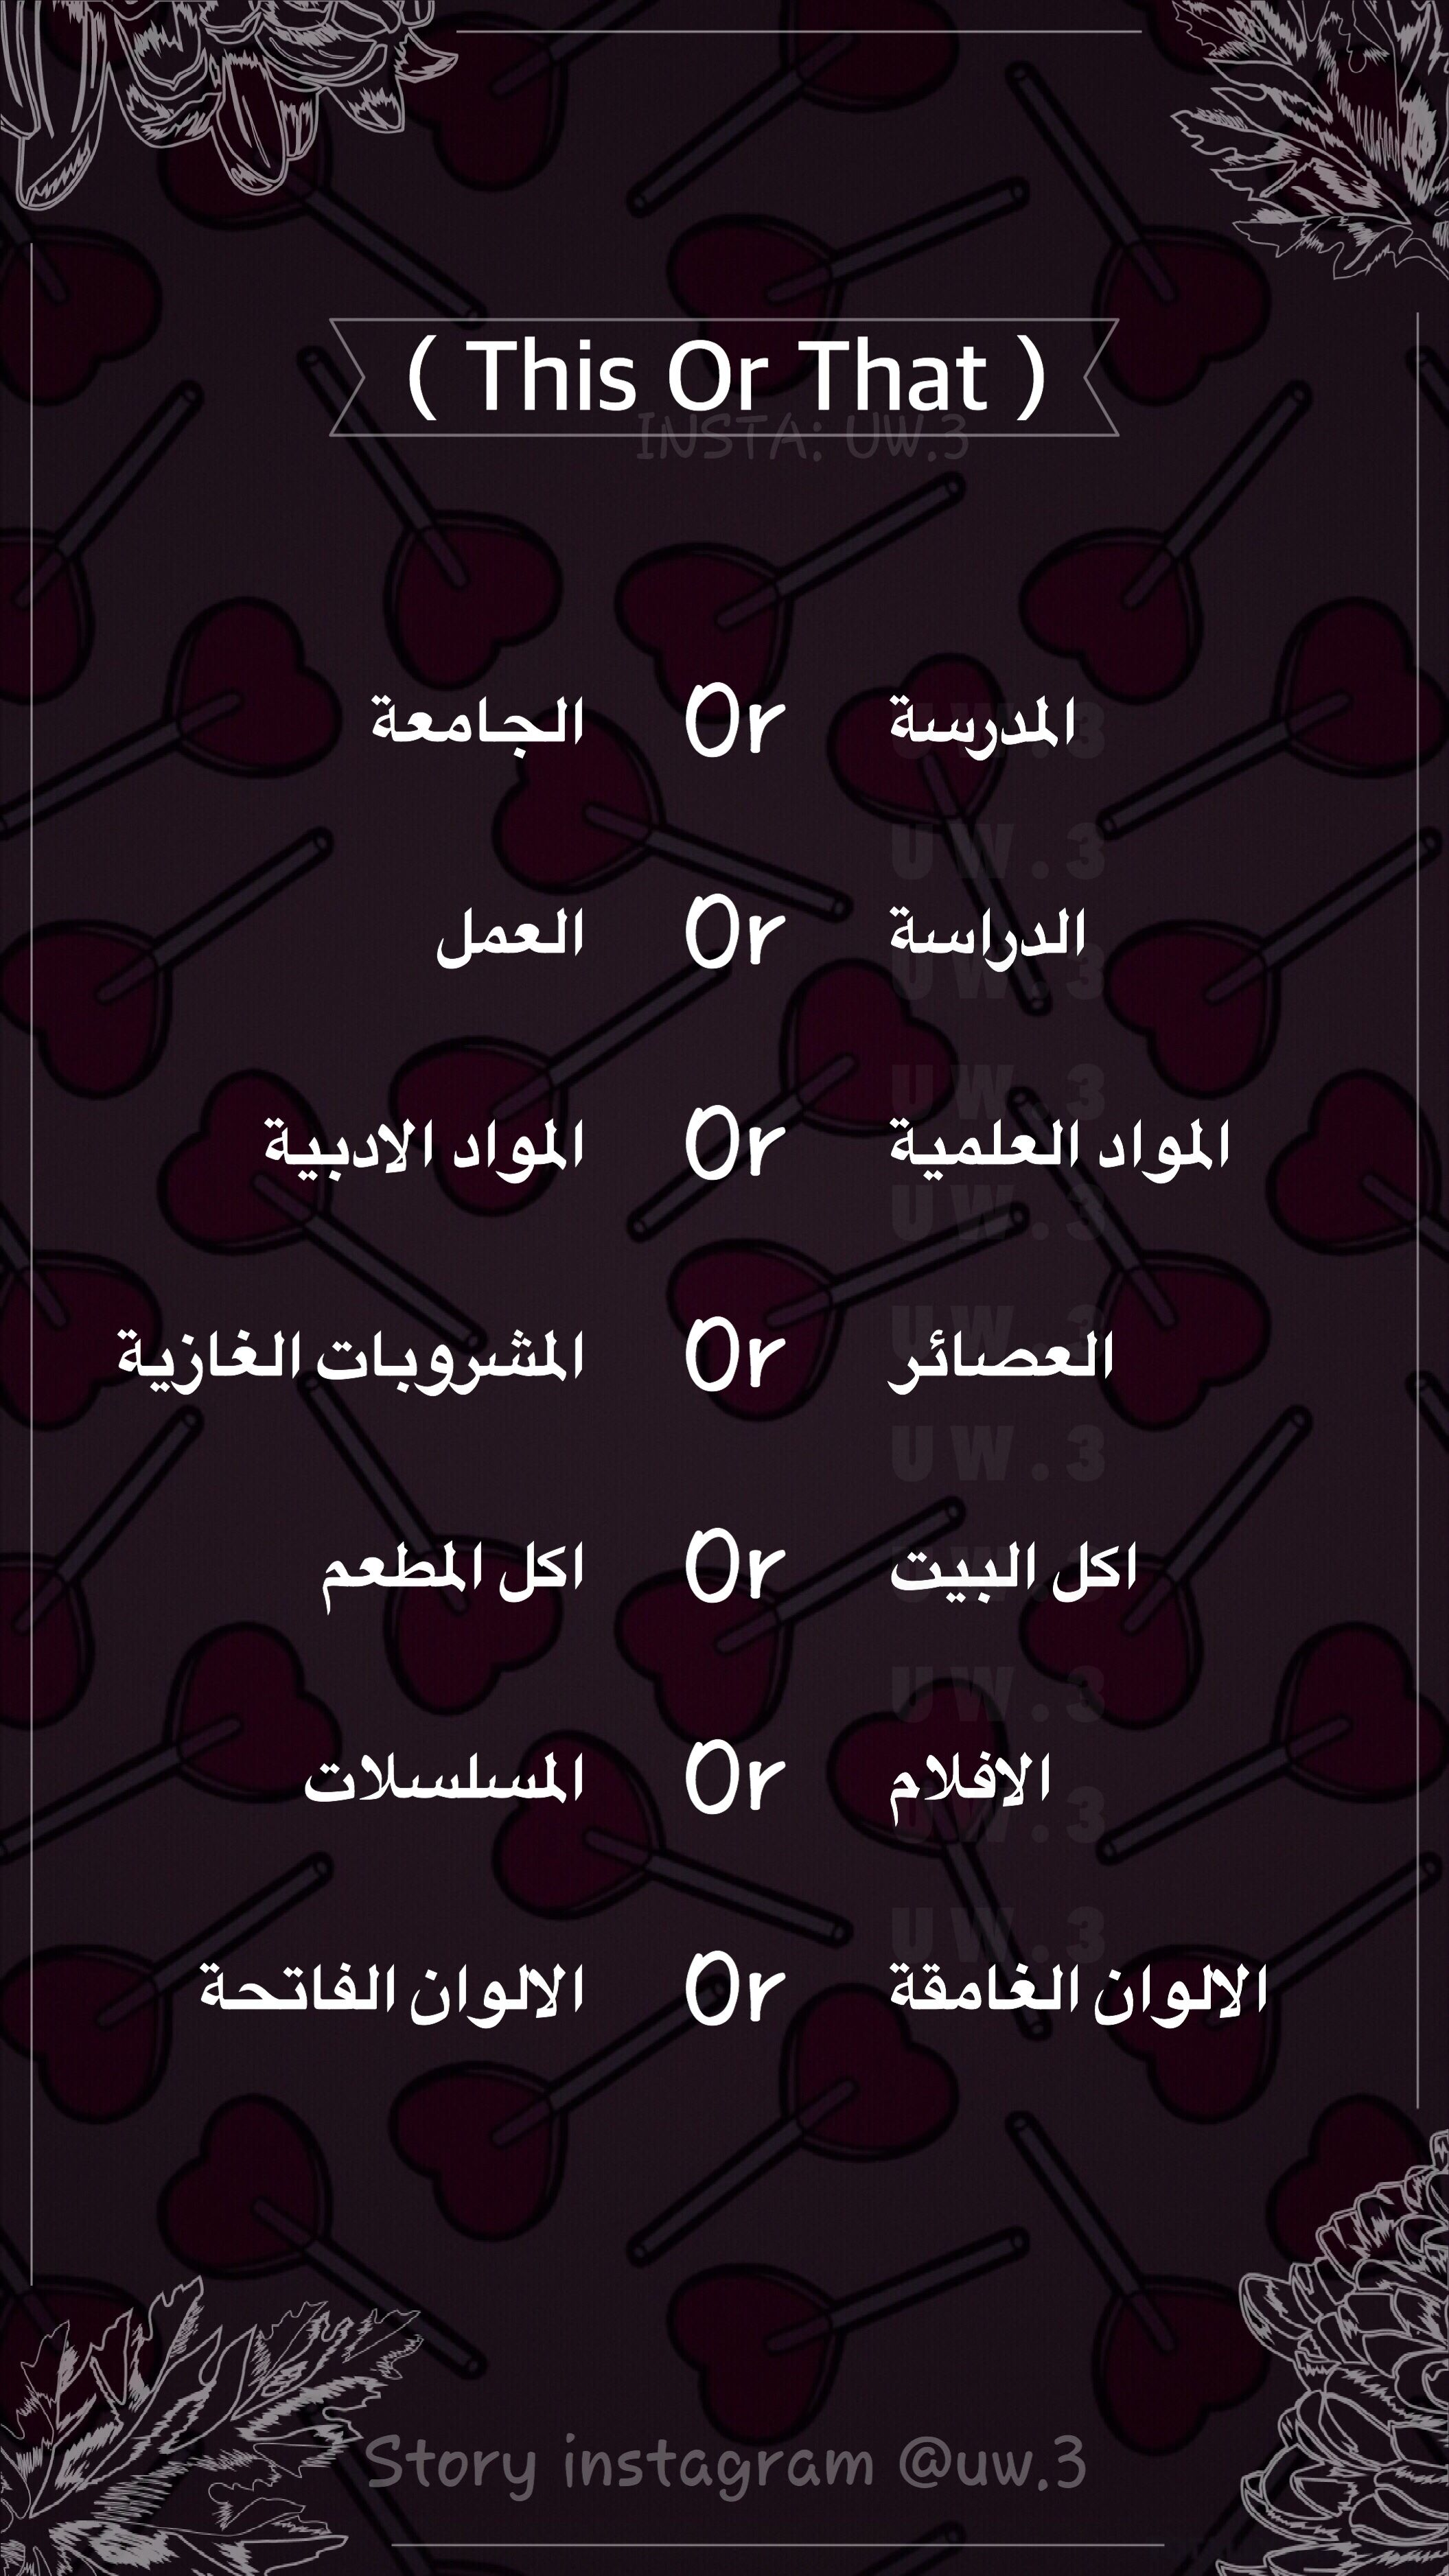 اسئلة ستوري ط Instagram Story Questions Instagram Words Instagram Quotes Captions